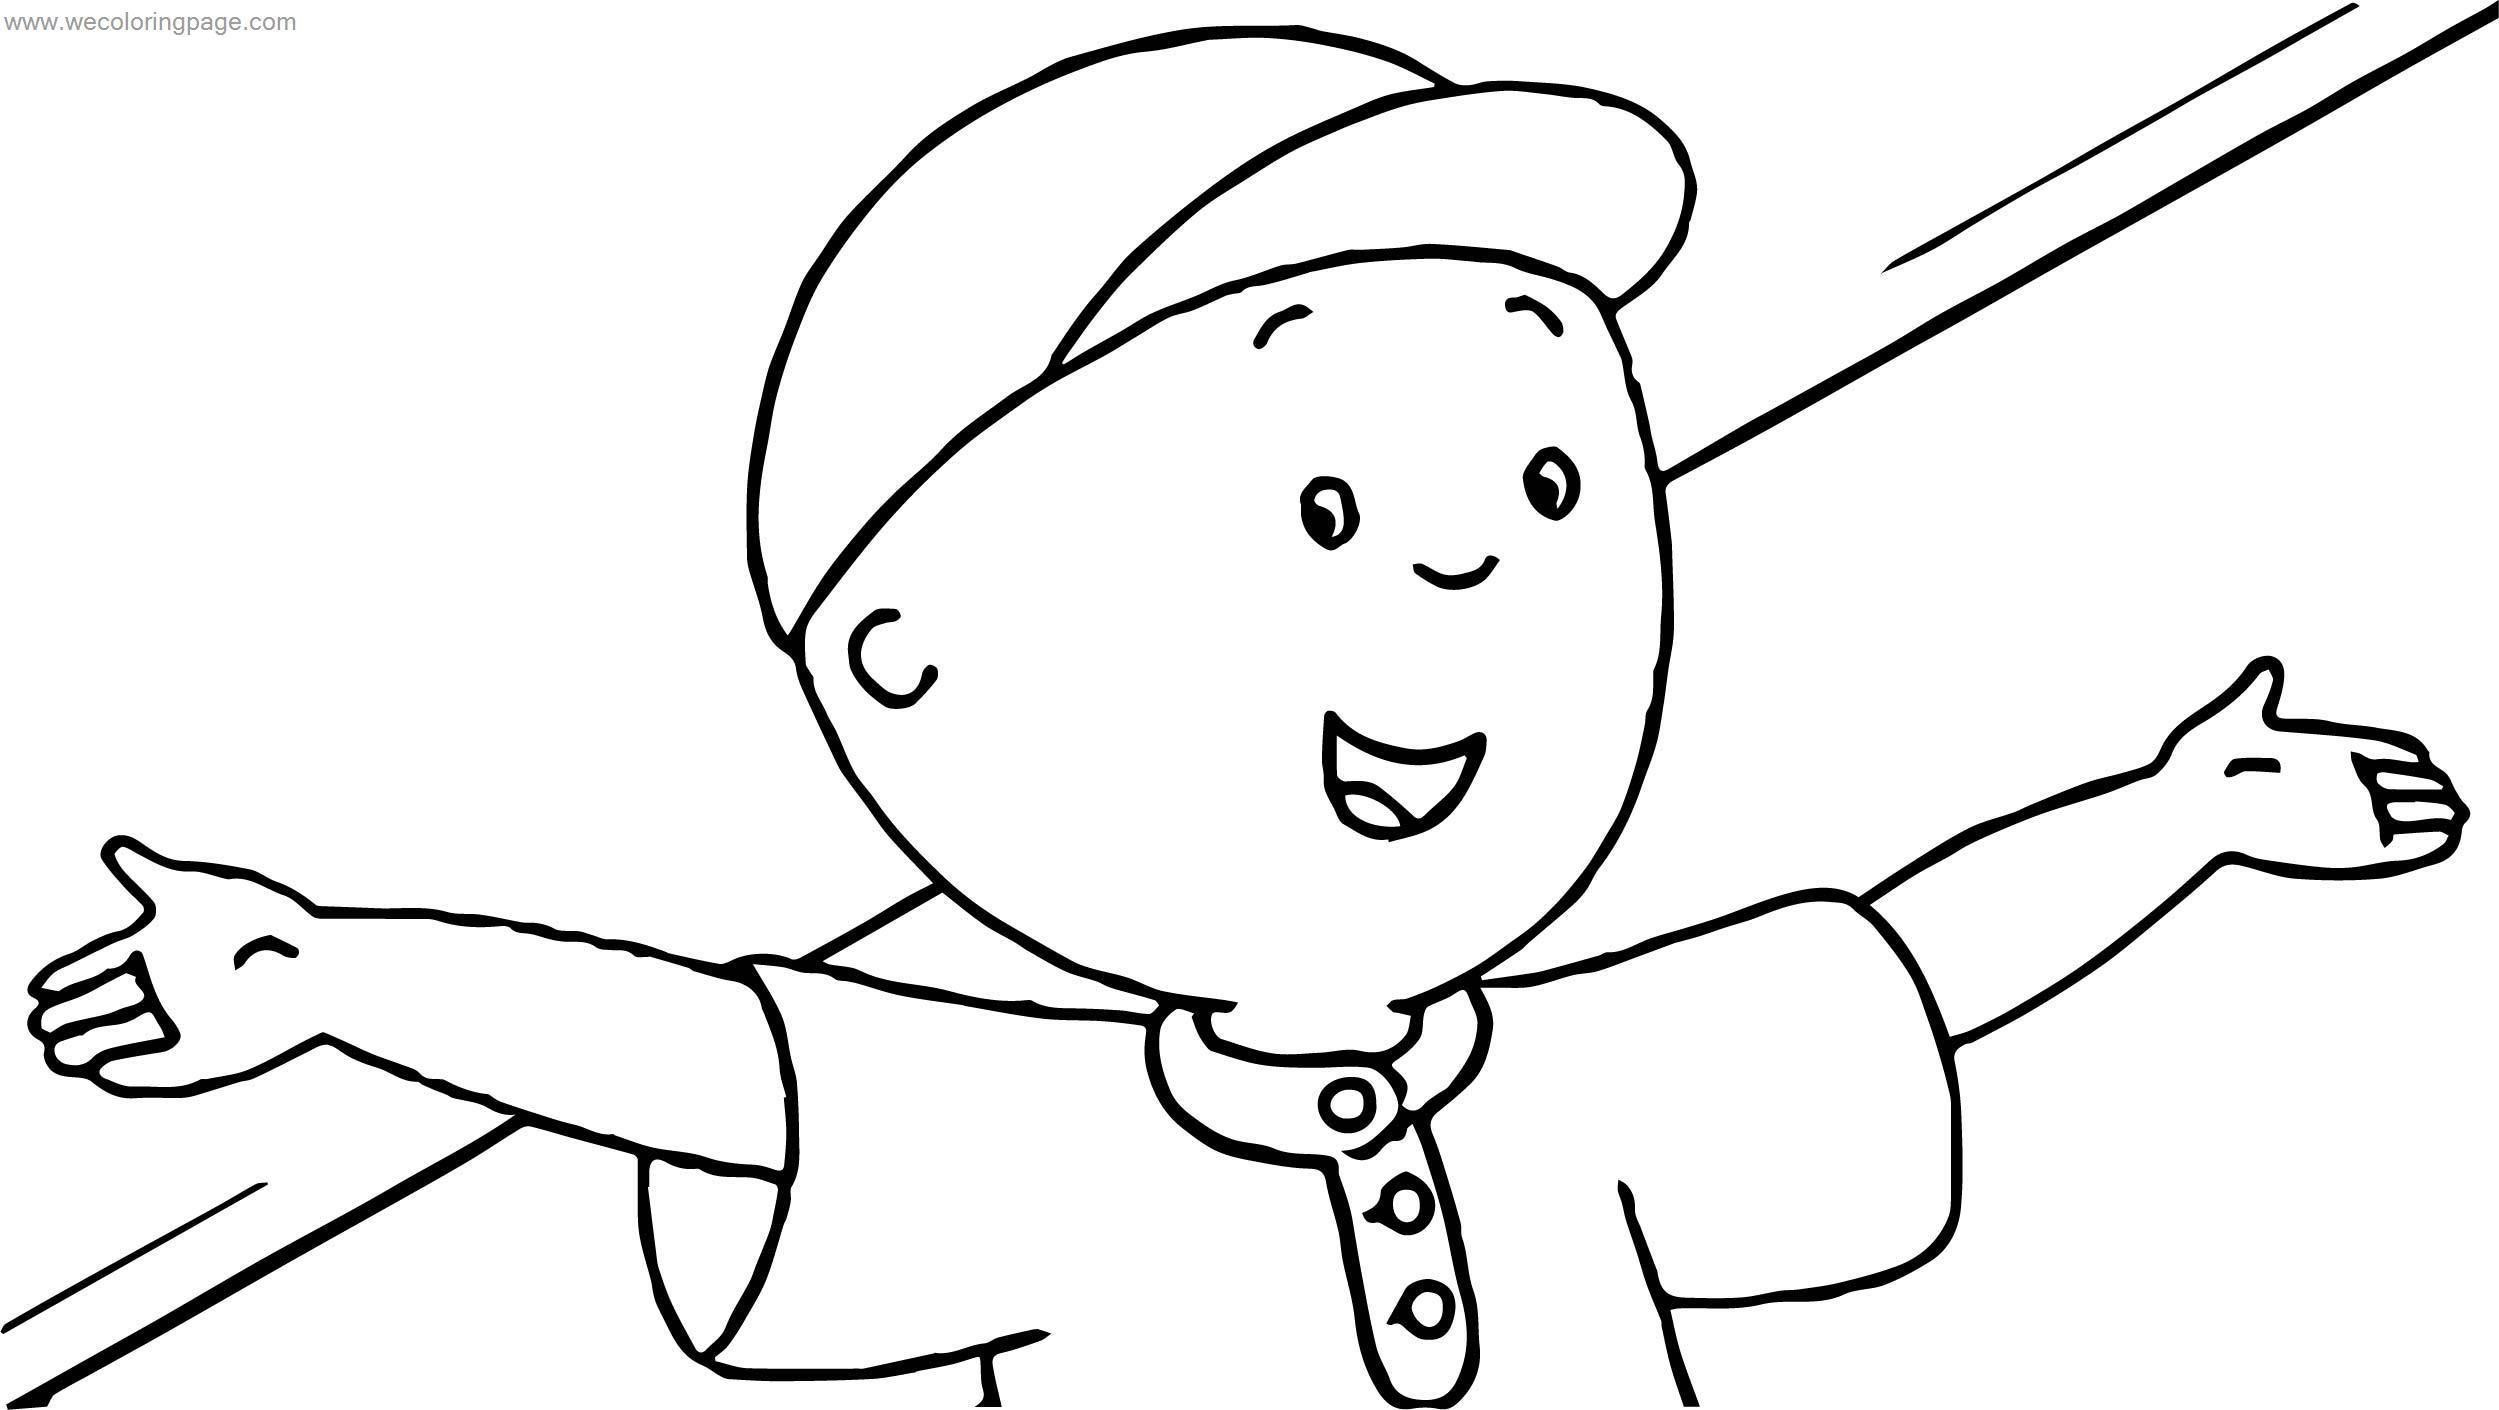 Caillou Me Coloring Page